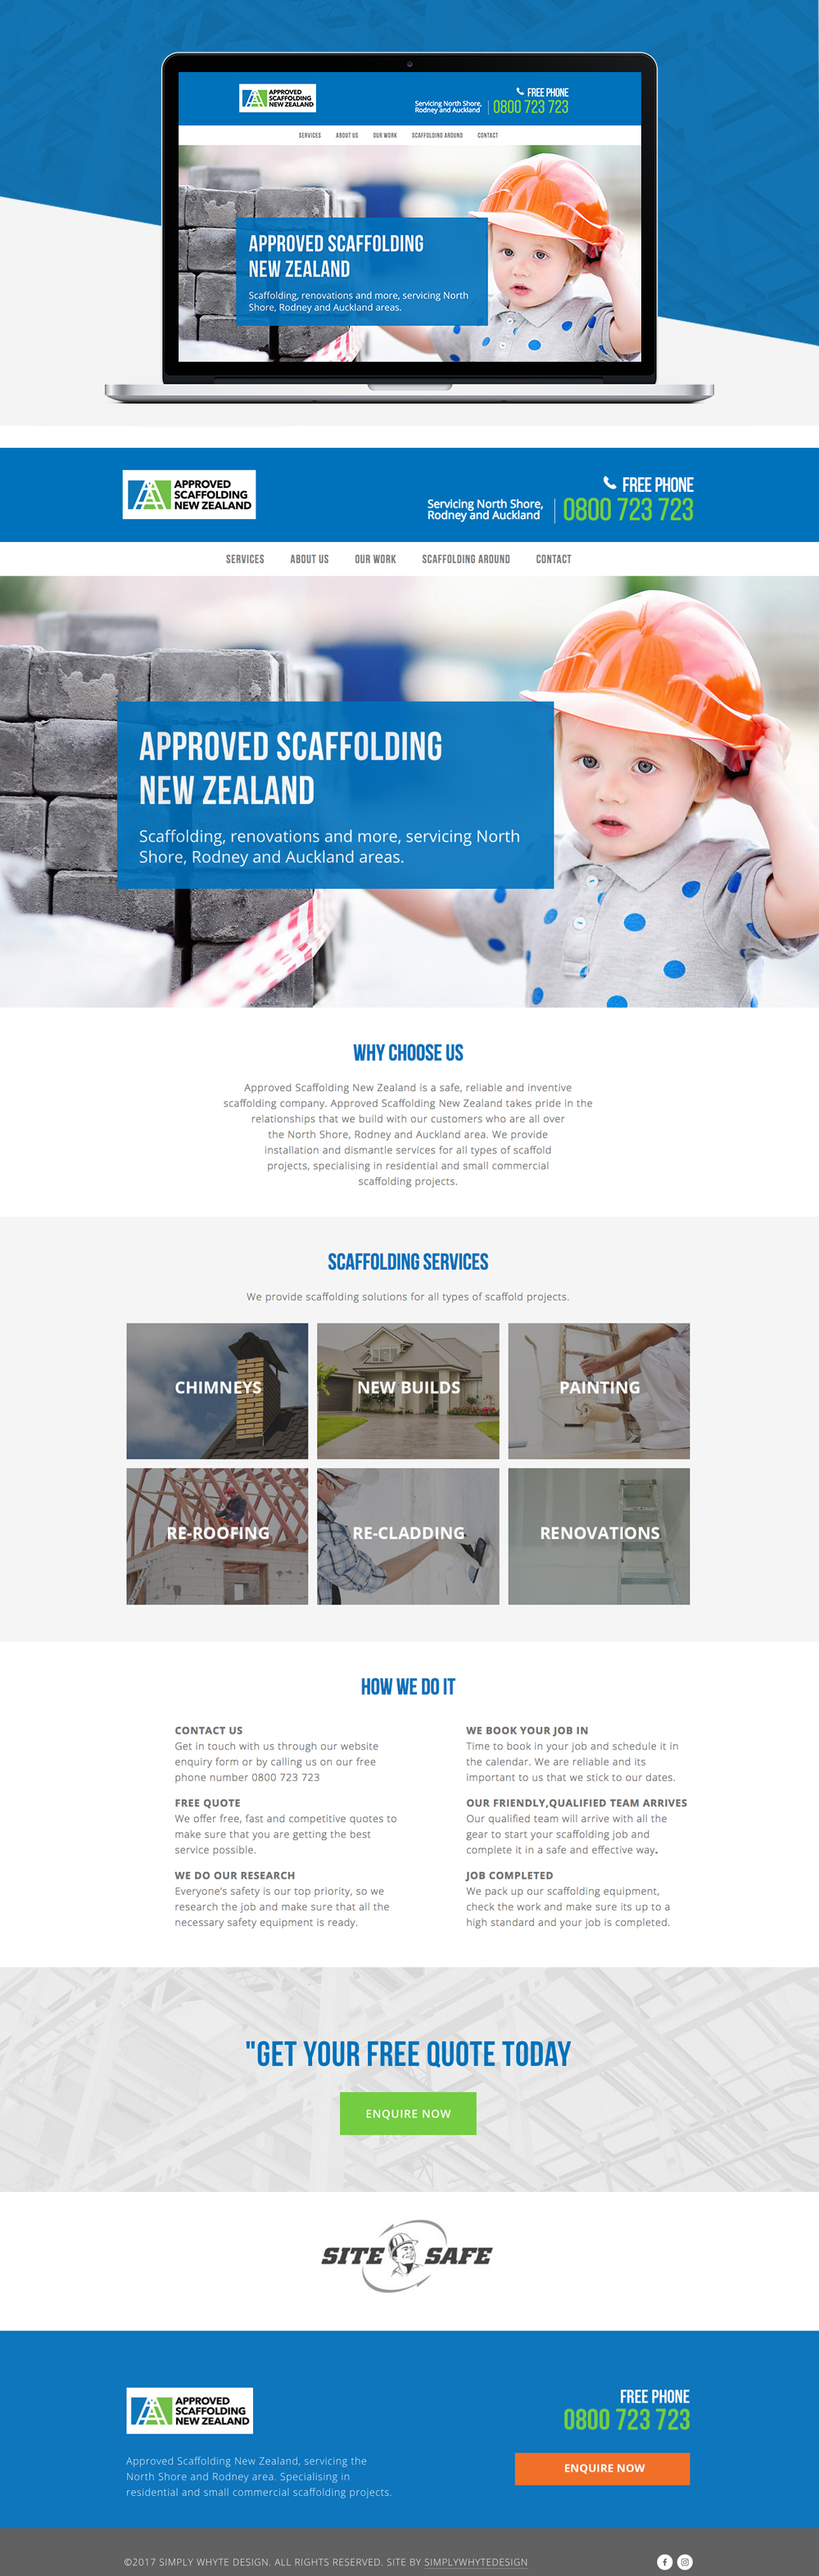 Approved_Scaffolding_New_Zealand - Simply Whyte Design | Auckland Brand Web Design